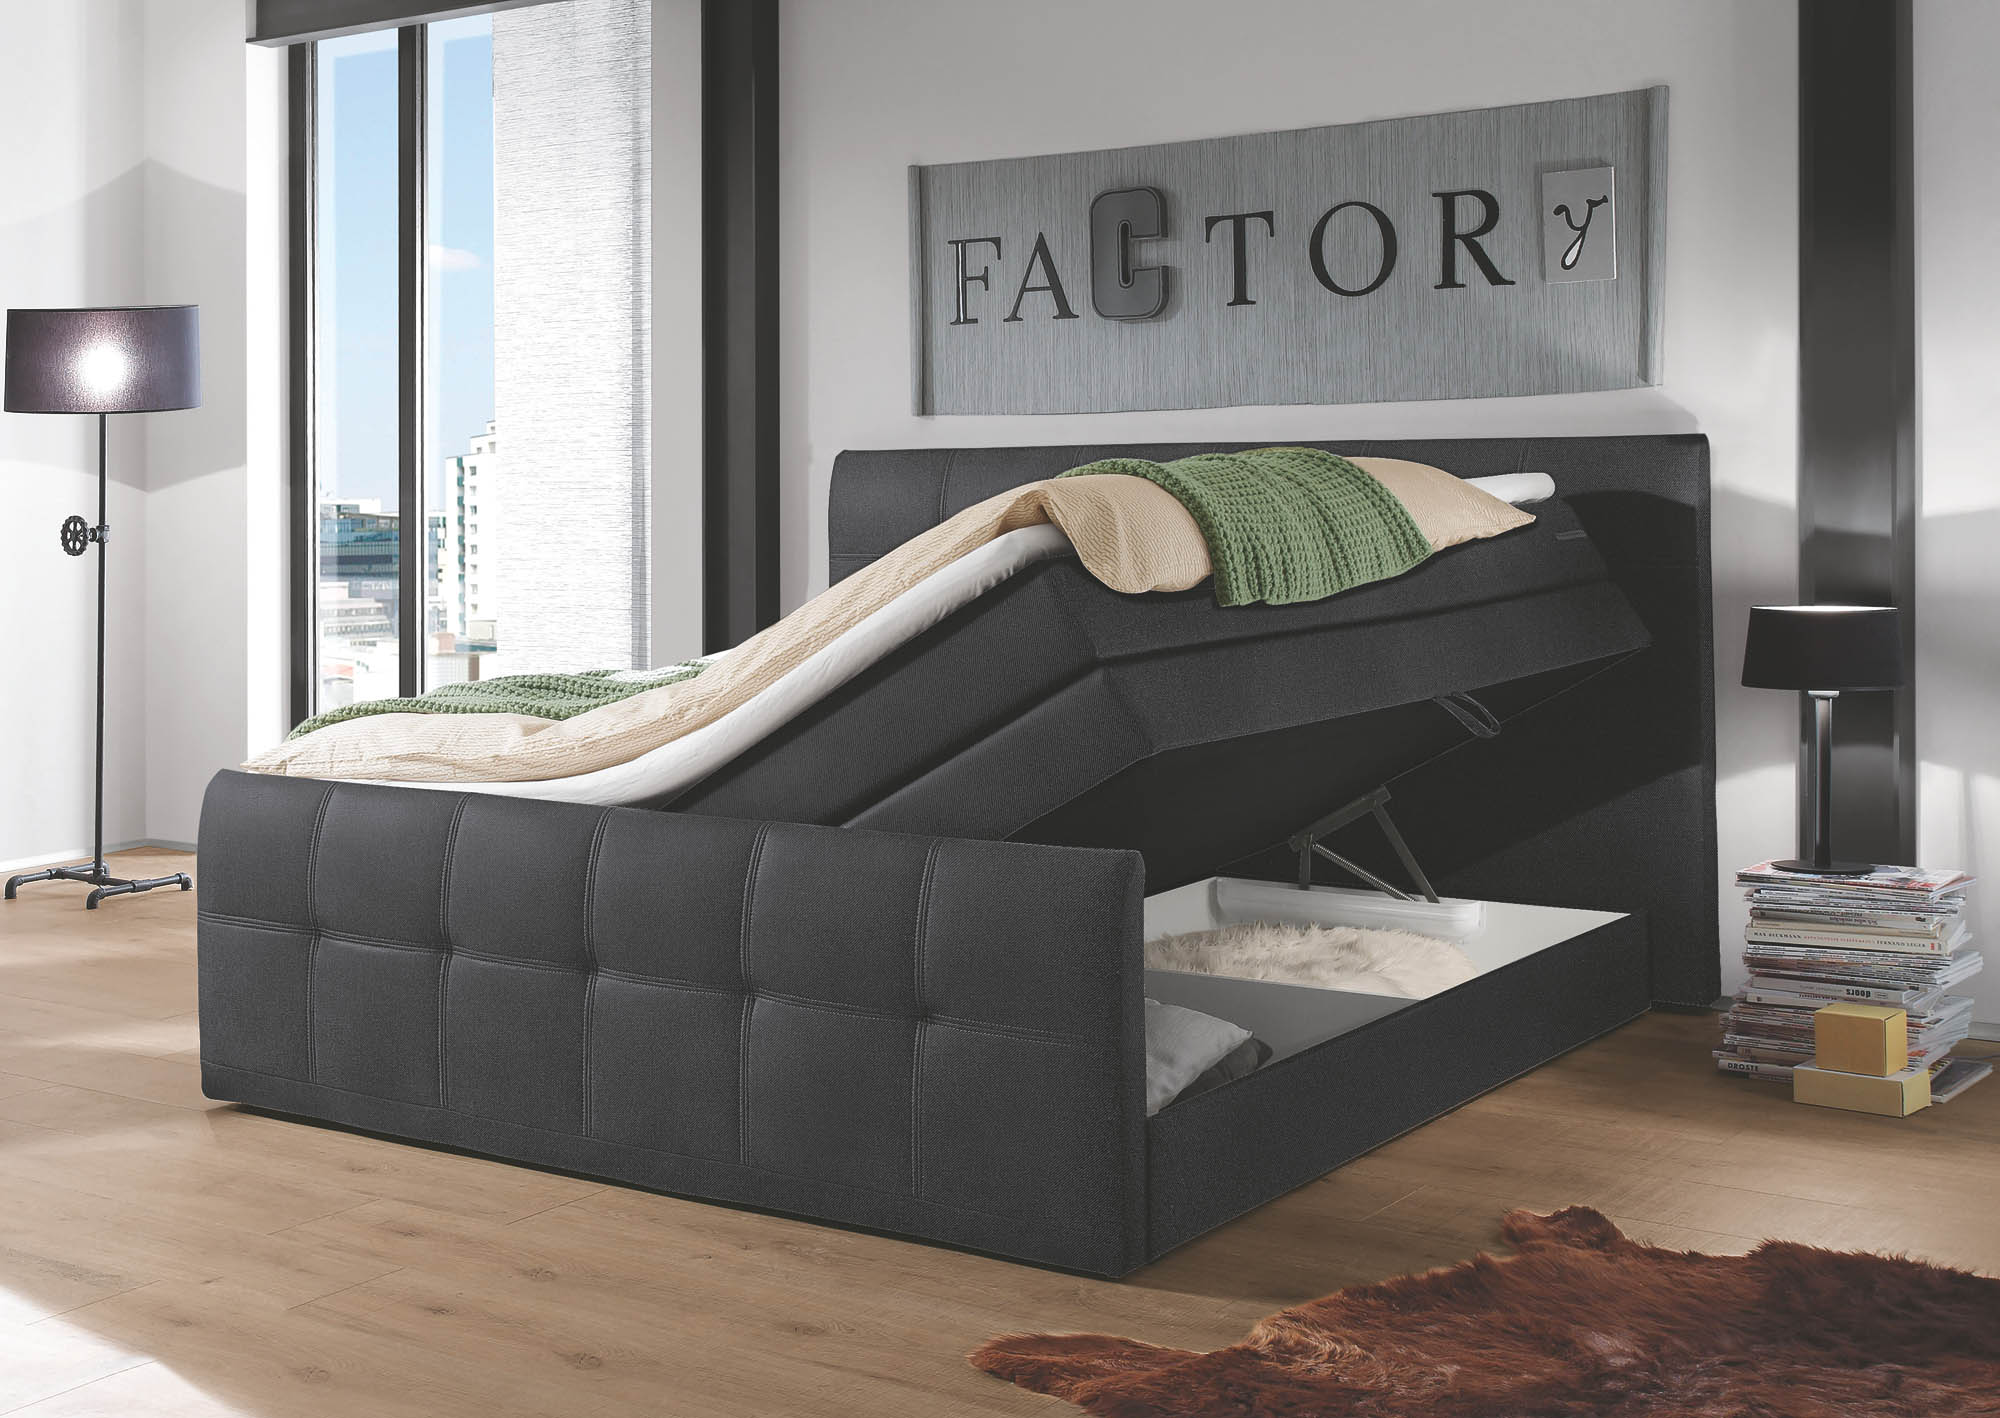 sacramento boxspringbett 180x200 inkl topper mit bettkasten by wohnorama ebay. Black Bedroom Furniture Sets. Home Design Ideas